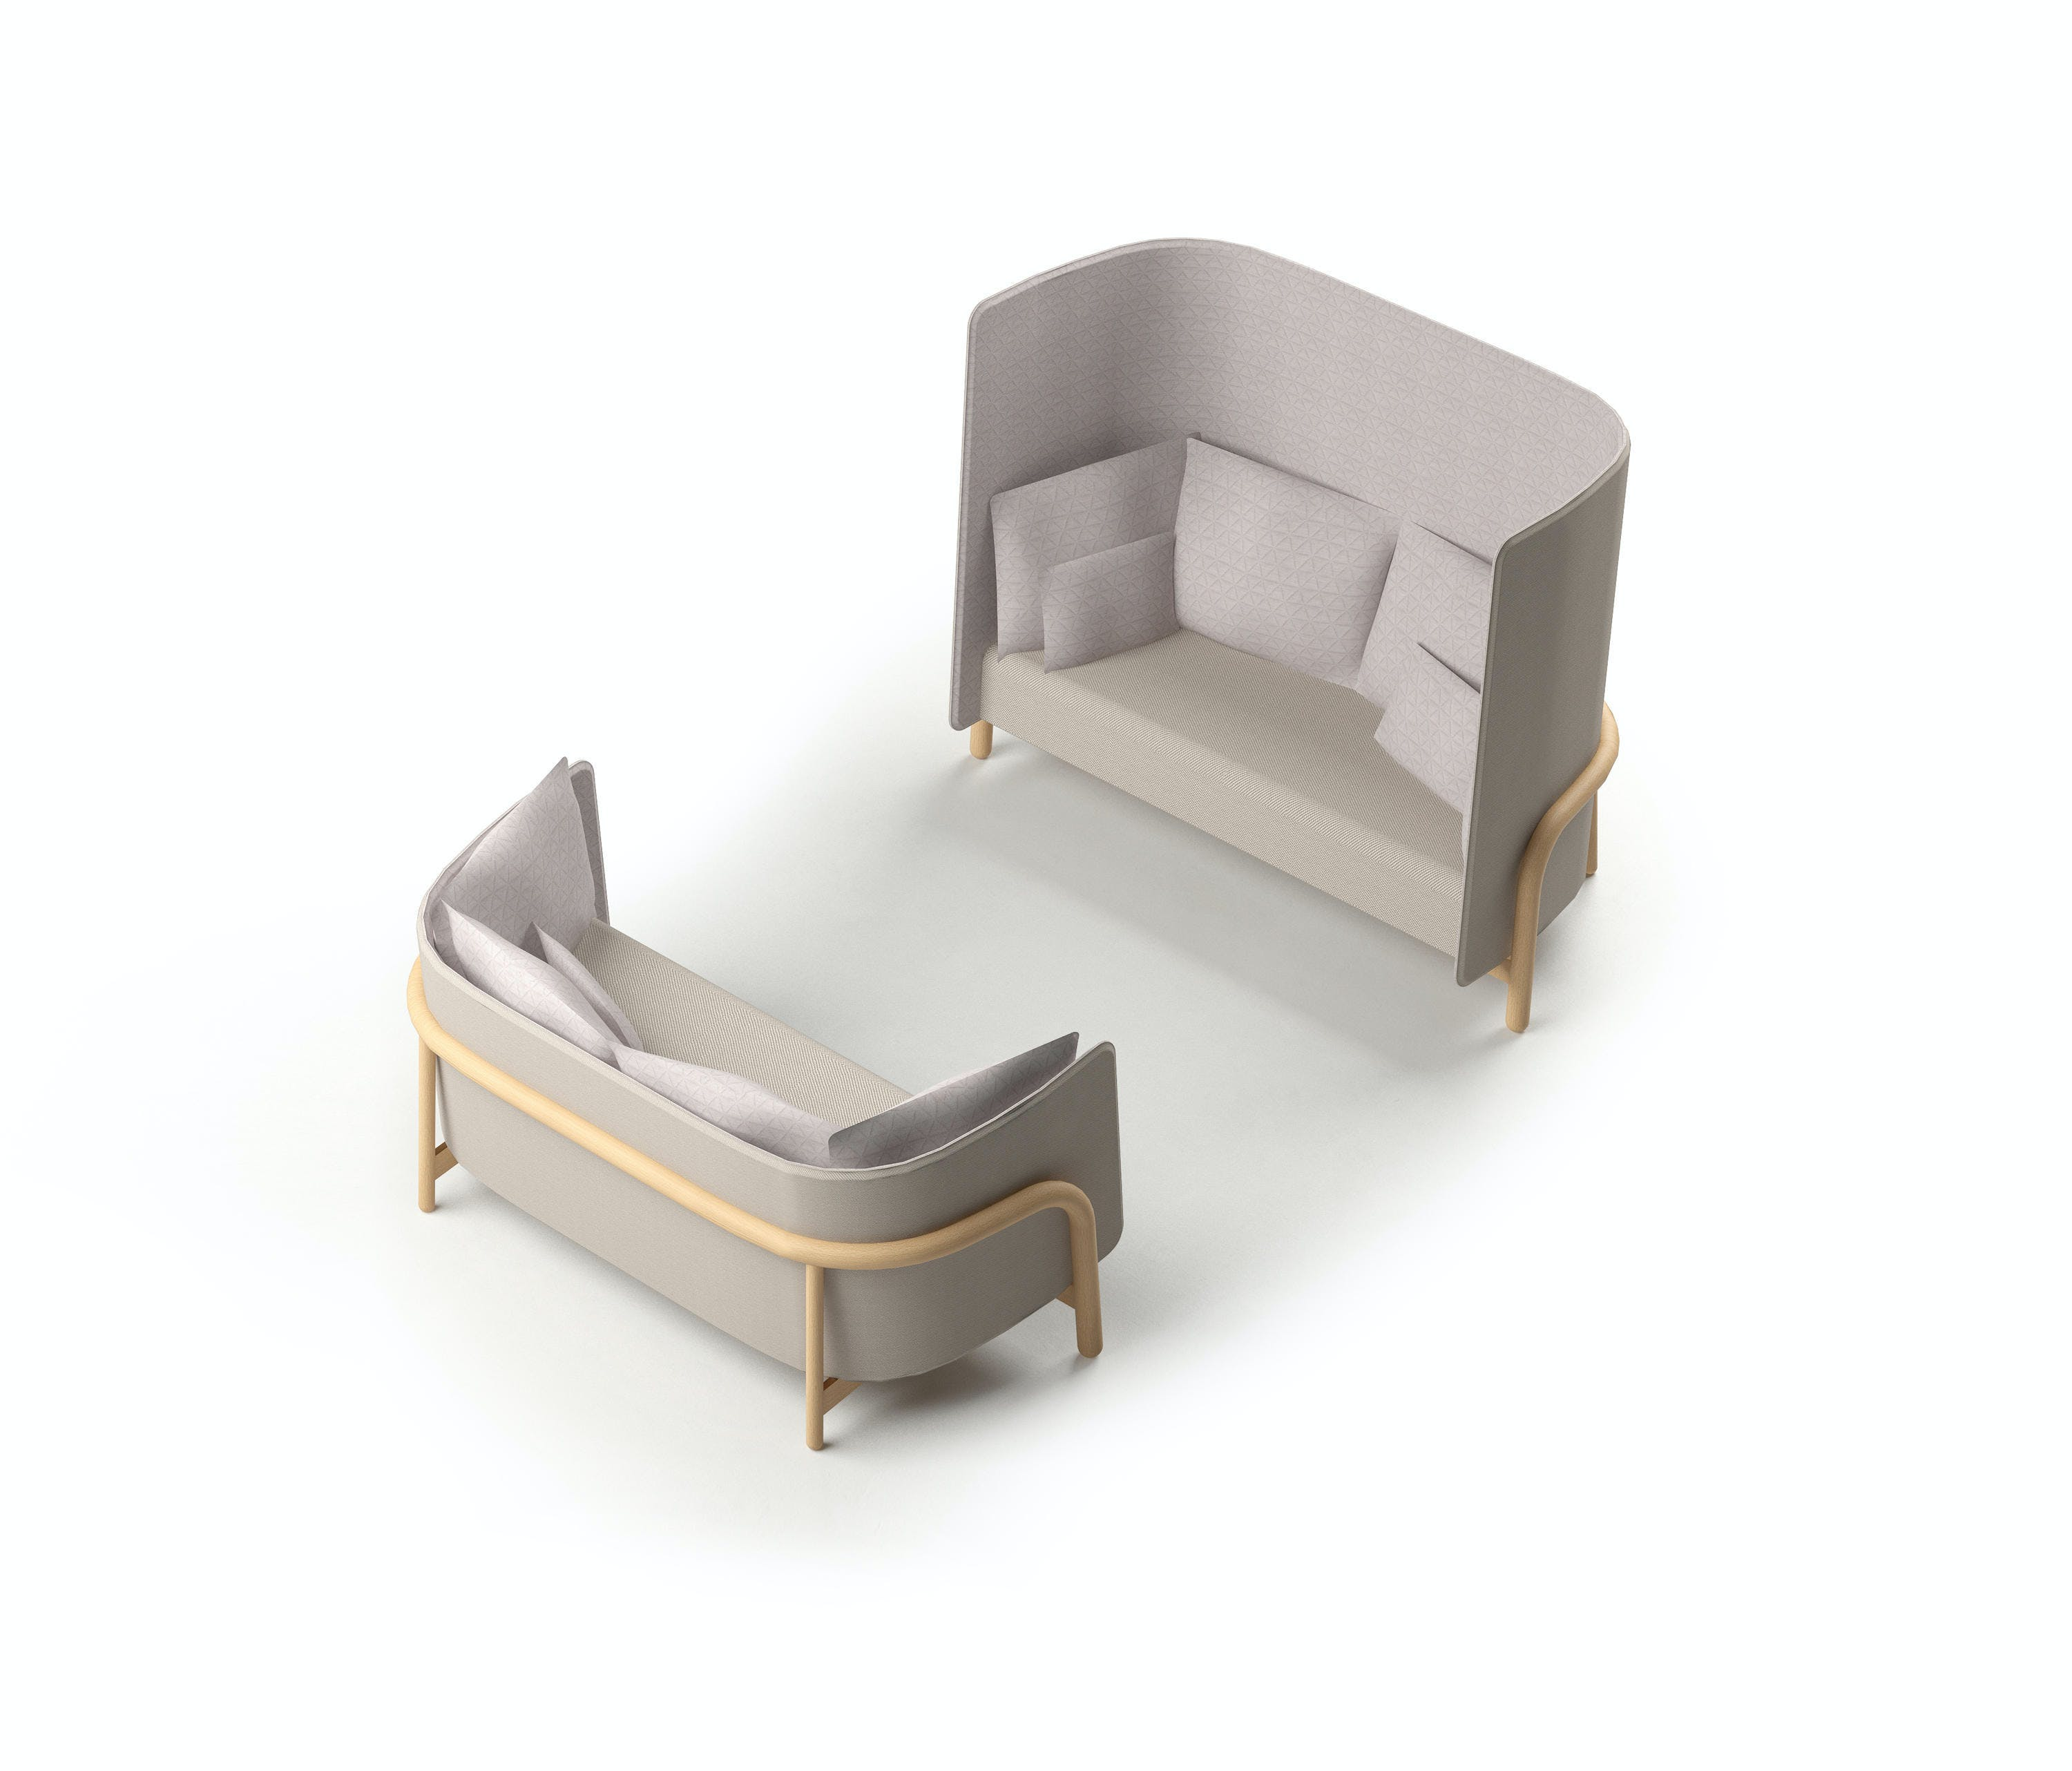 Beech Private 2 Bench 2 B